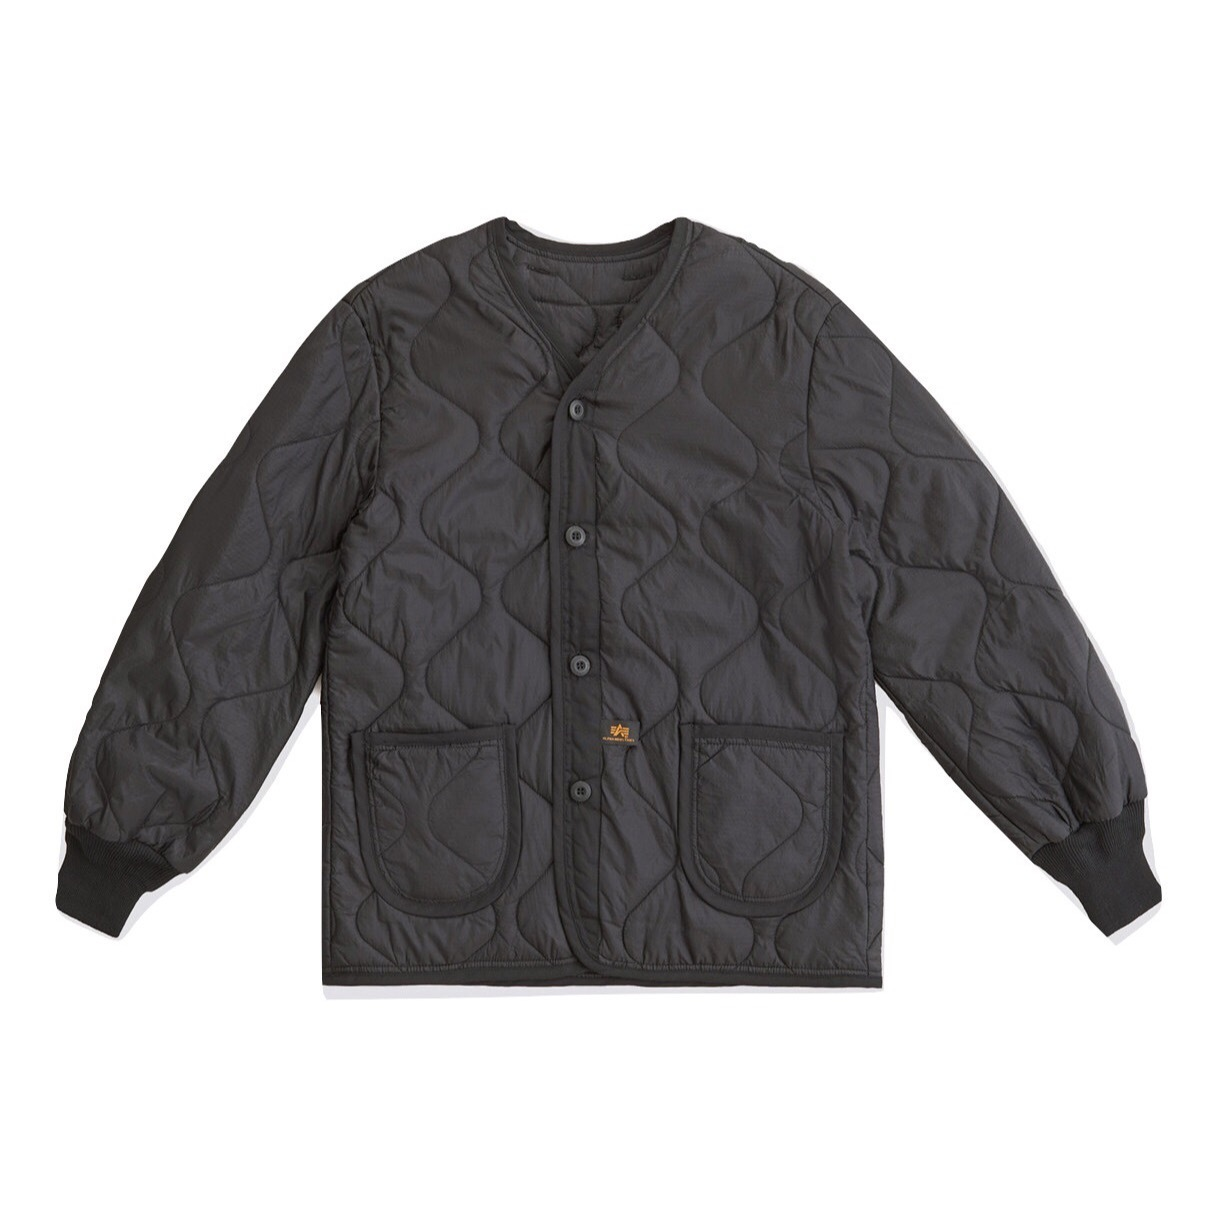 Подкладка для куртки Alpha Industries M-65 Black (черная)